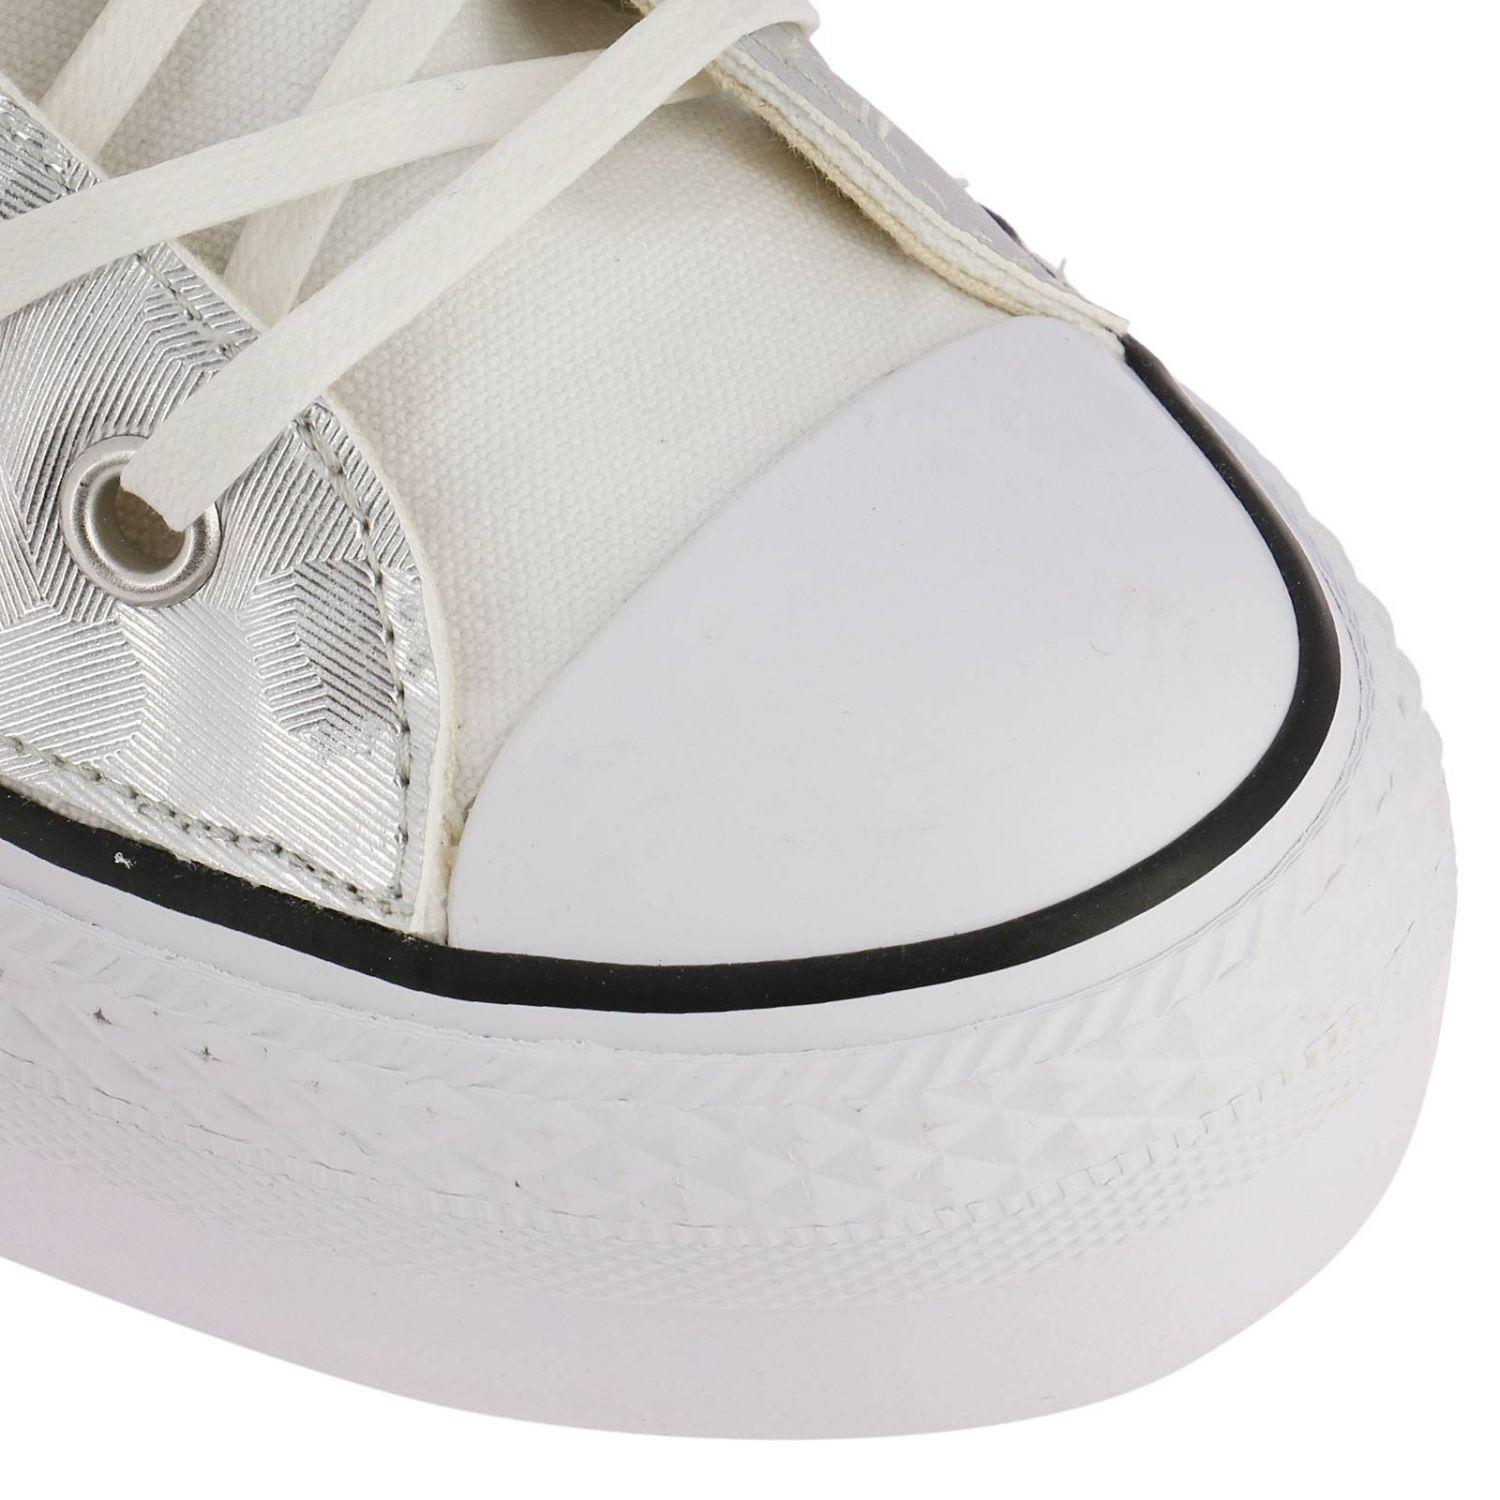 Converse Canvas Sneakers Women